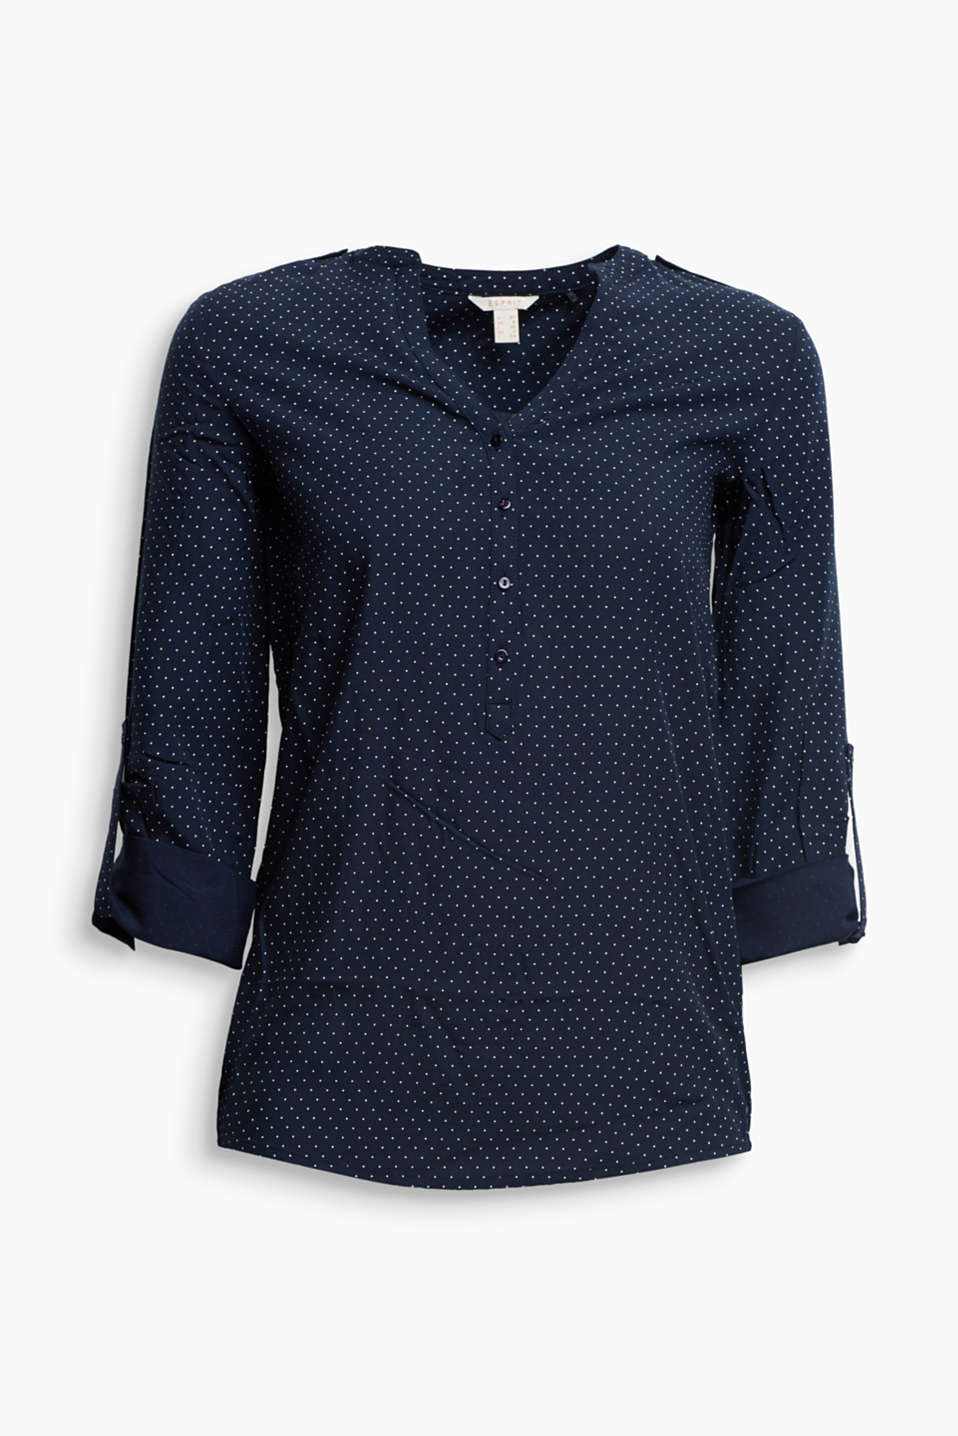 This flowing Henley blouse with a polka dot print and adjustable sleeve length is an indispensable essential.